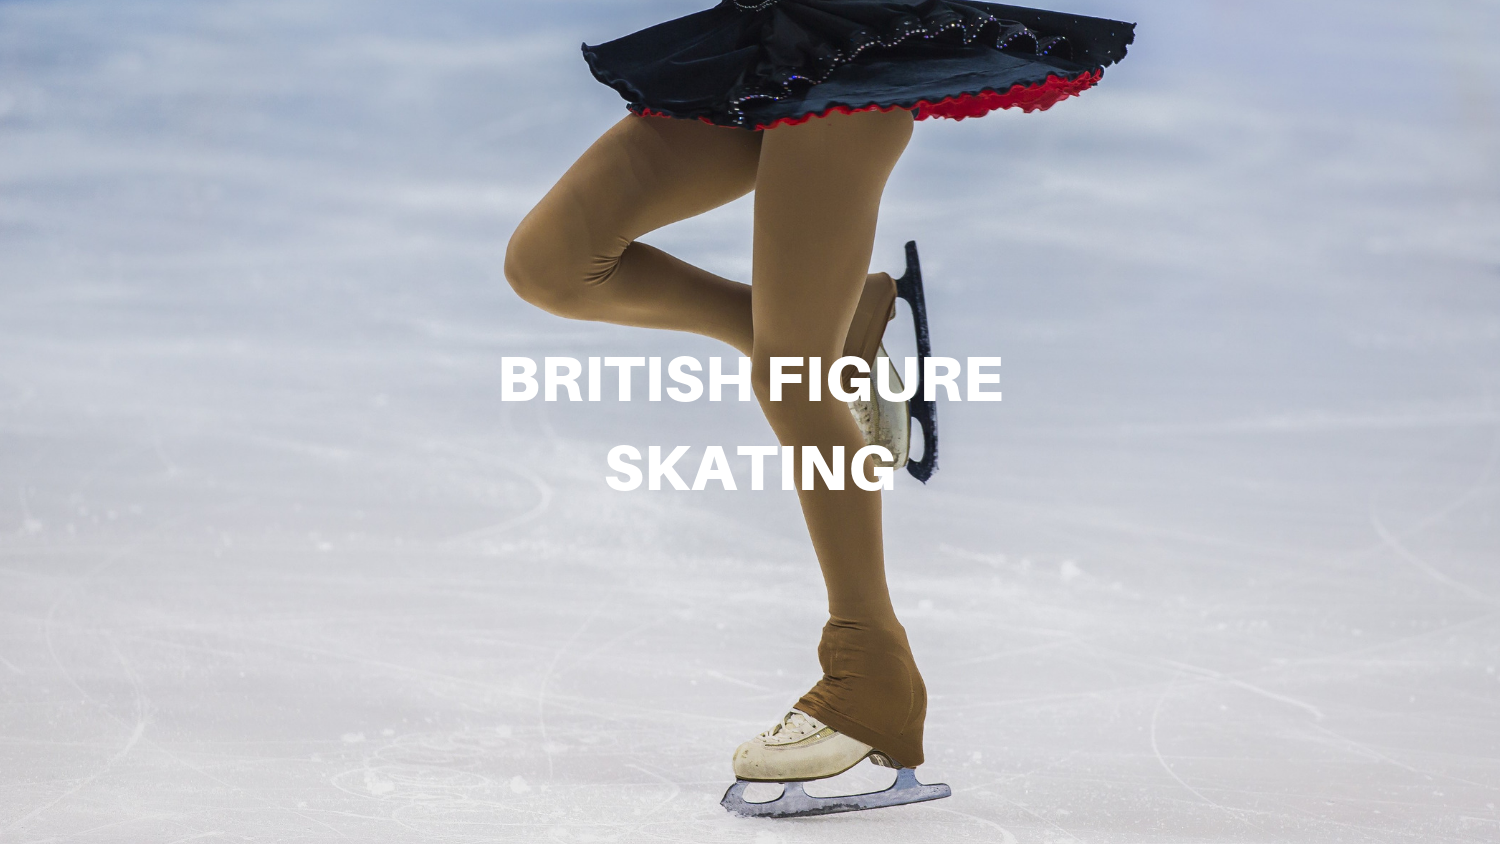 British Ice Skating - A new brand and a new broadcast